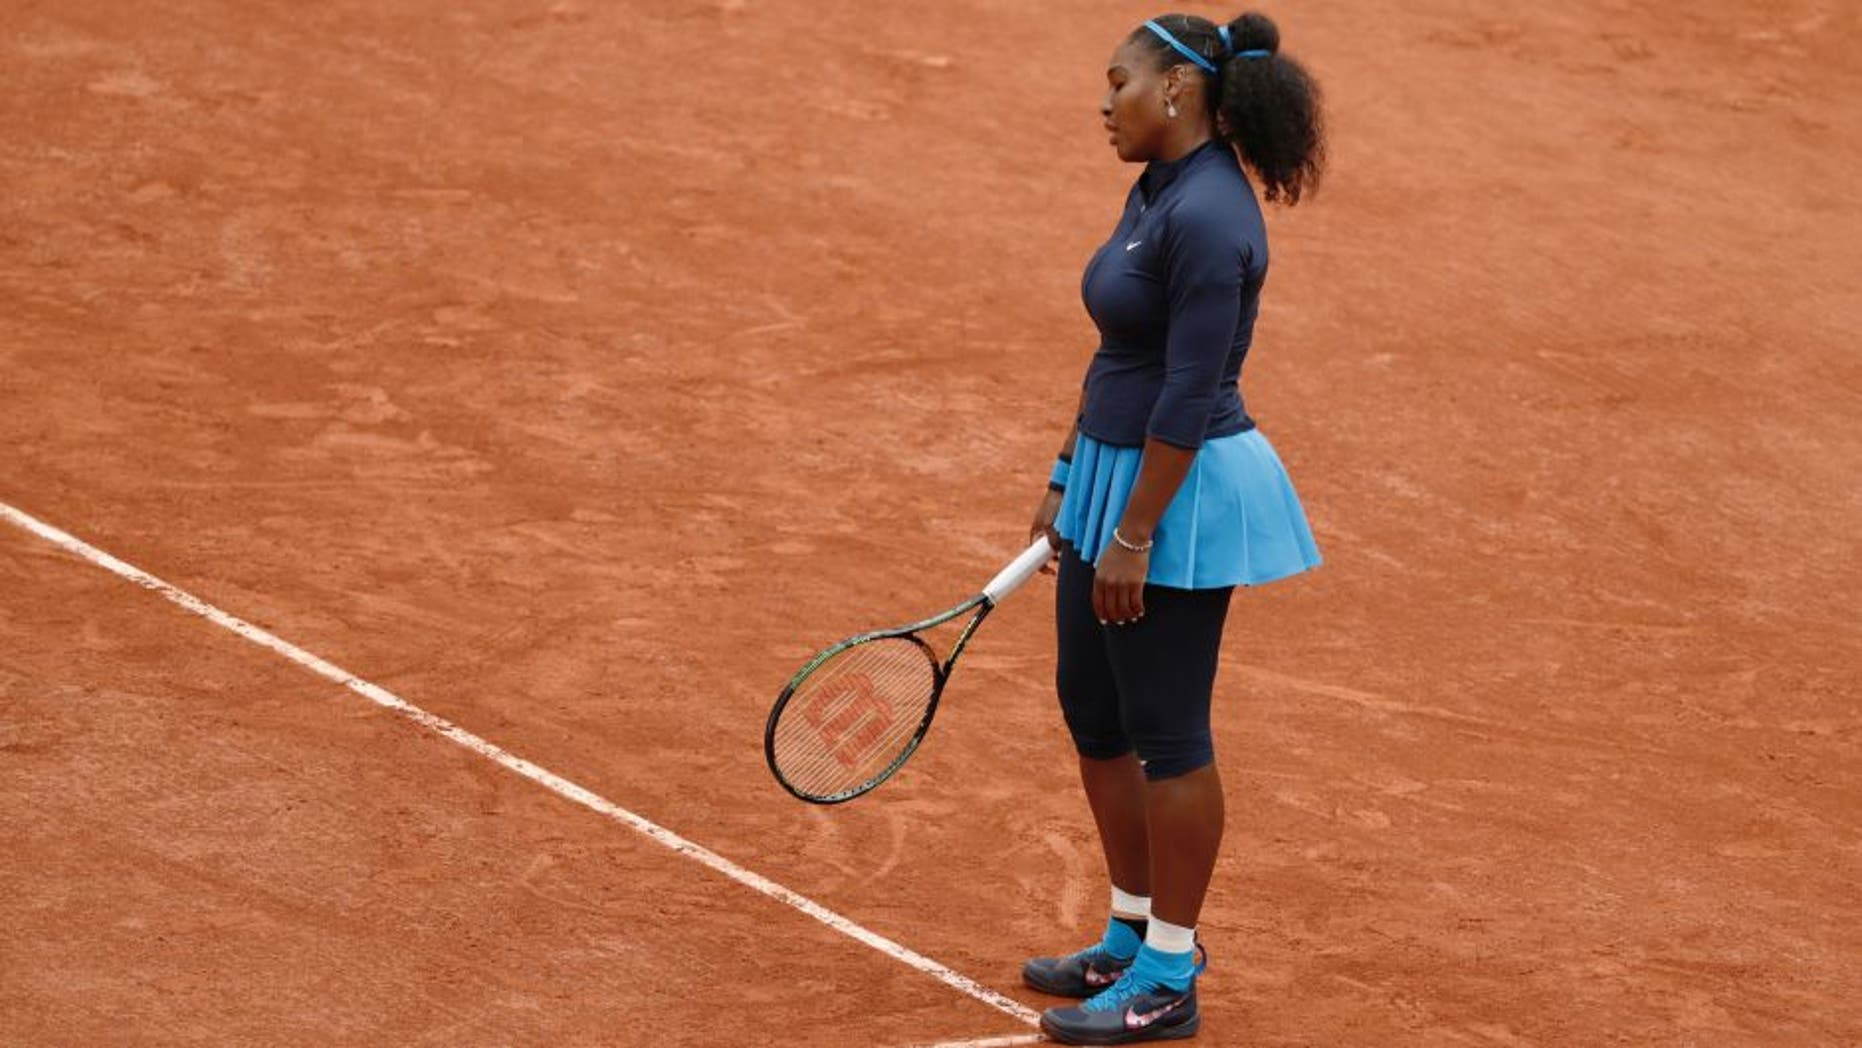 The US's Serena Williams reacts during her women's final match against Spain's Garbine Muguruza at the Roland Garros 2016 French Tennis Open in Paris on June 4, 2016. / AFP / Thomas SAMSON (Photo credit should read THOMAS SAMSON/AFP/Getty Images)